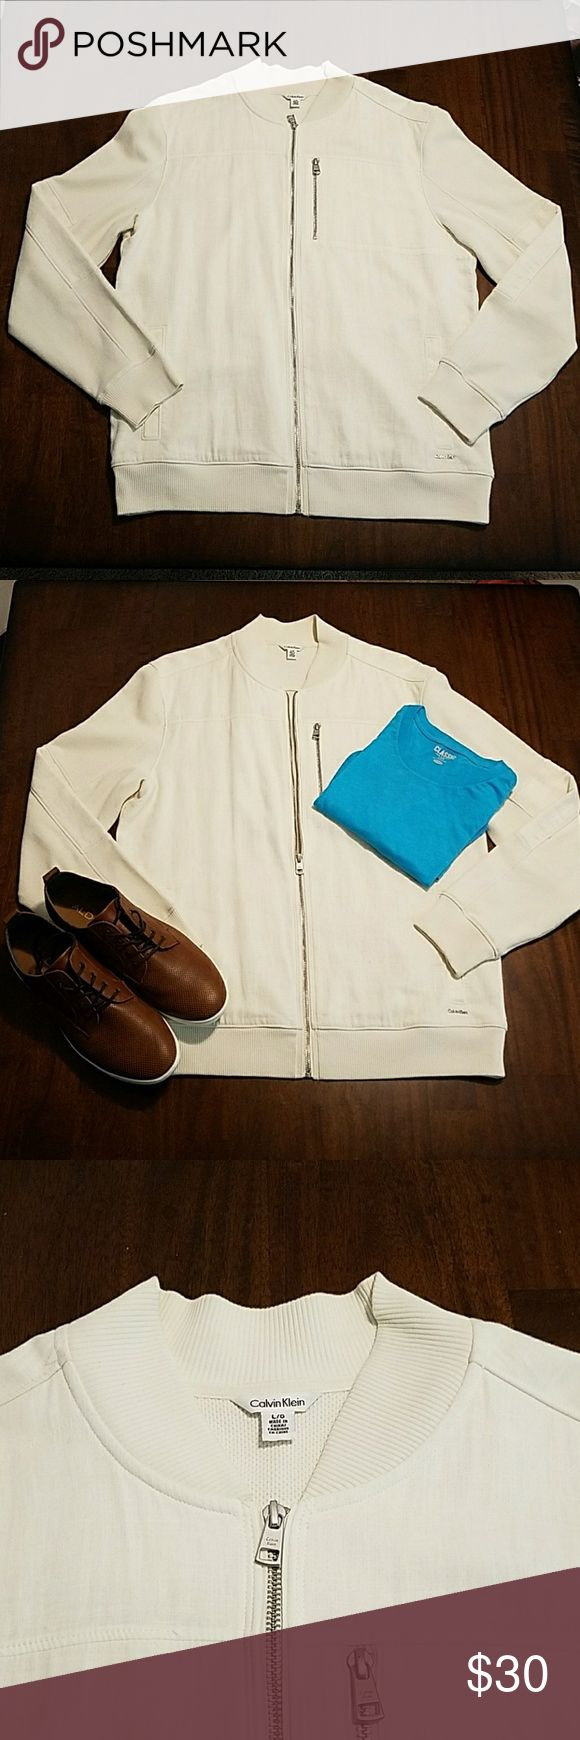 Calvin Klein lightweight bomber jacket Calvin Klein lightweight bomber jacket, almost like new! Size is large and color is off-white, very stylish and versatile. Calvin Klein Jackets & Coats Lightweight & Shirt Jackets